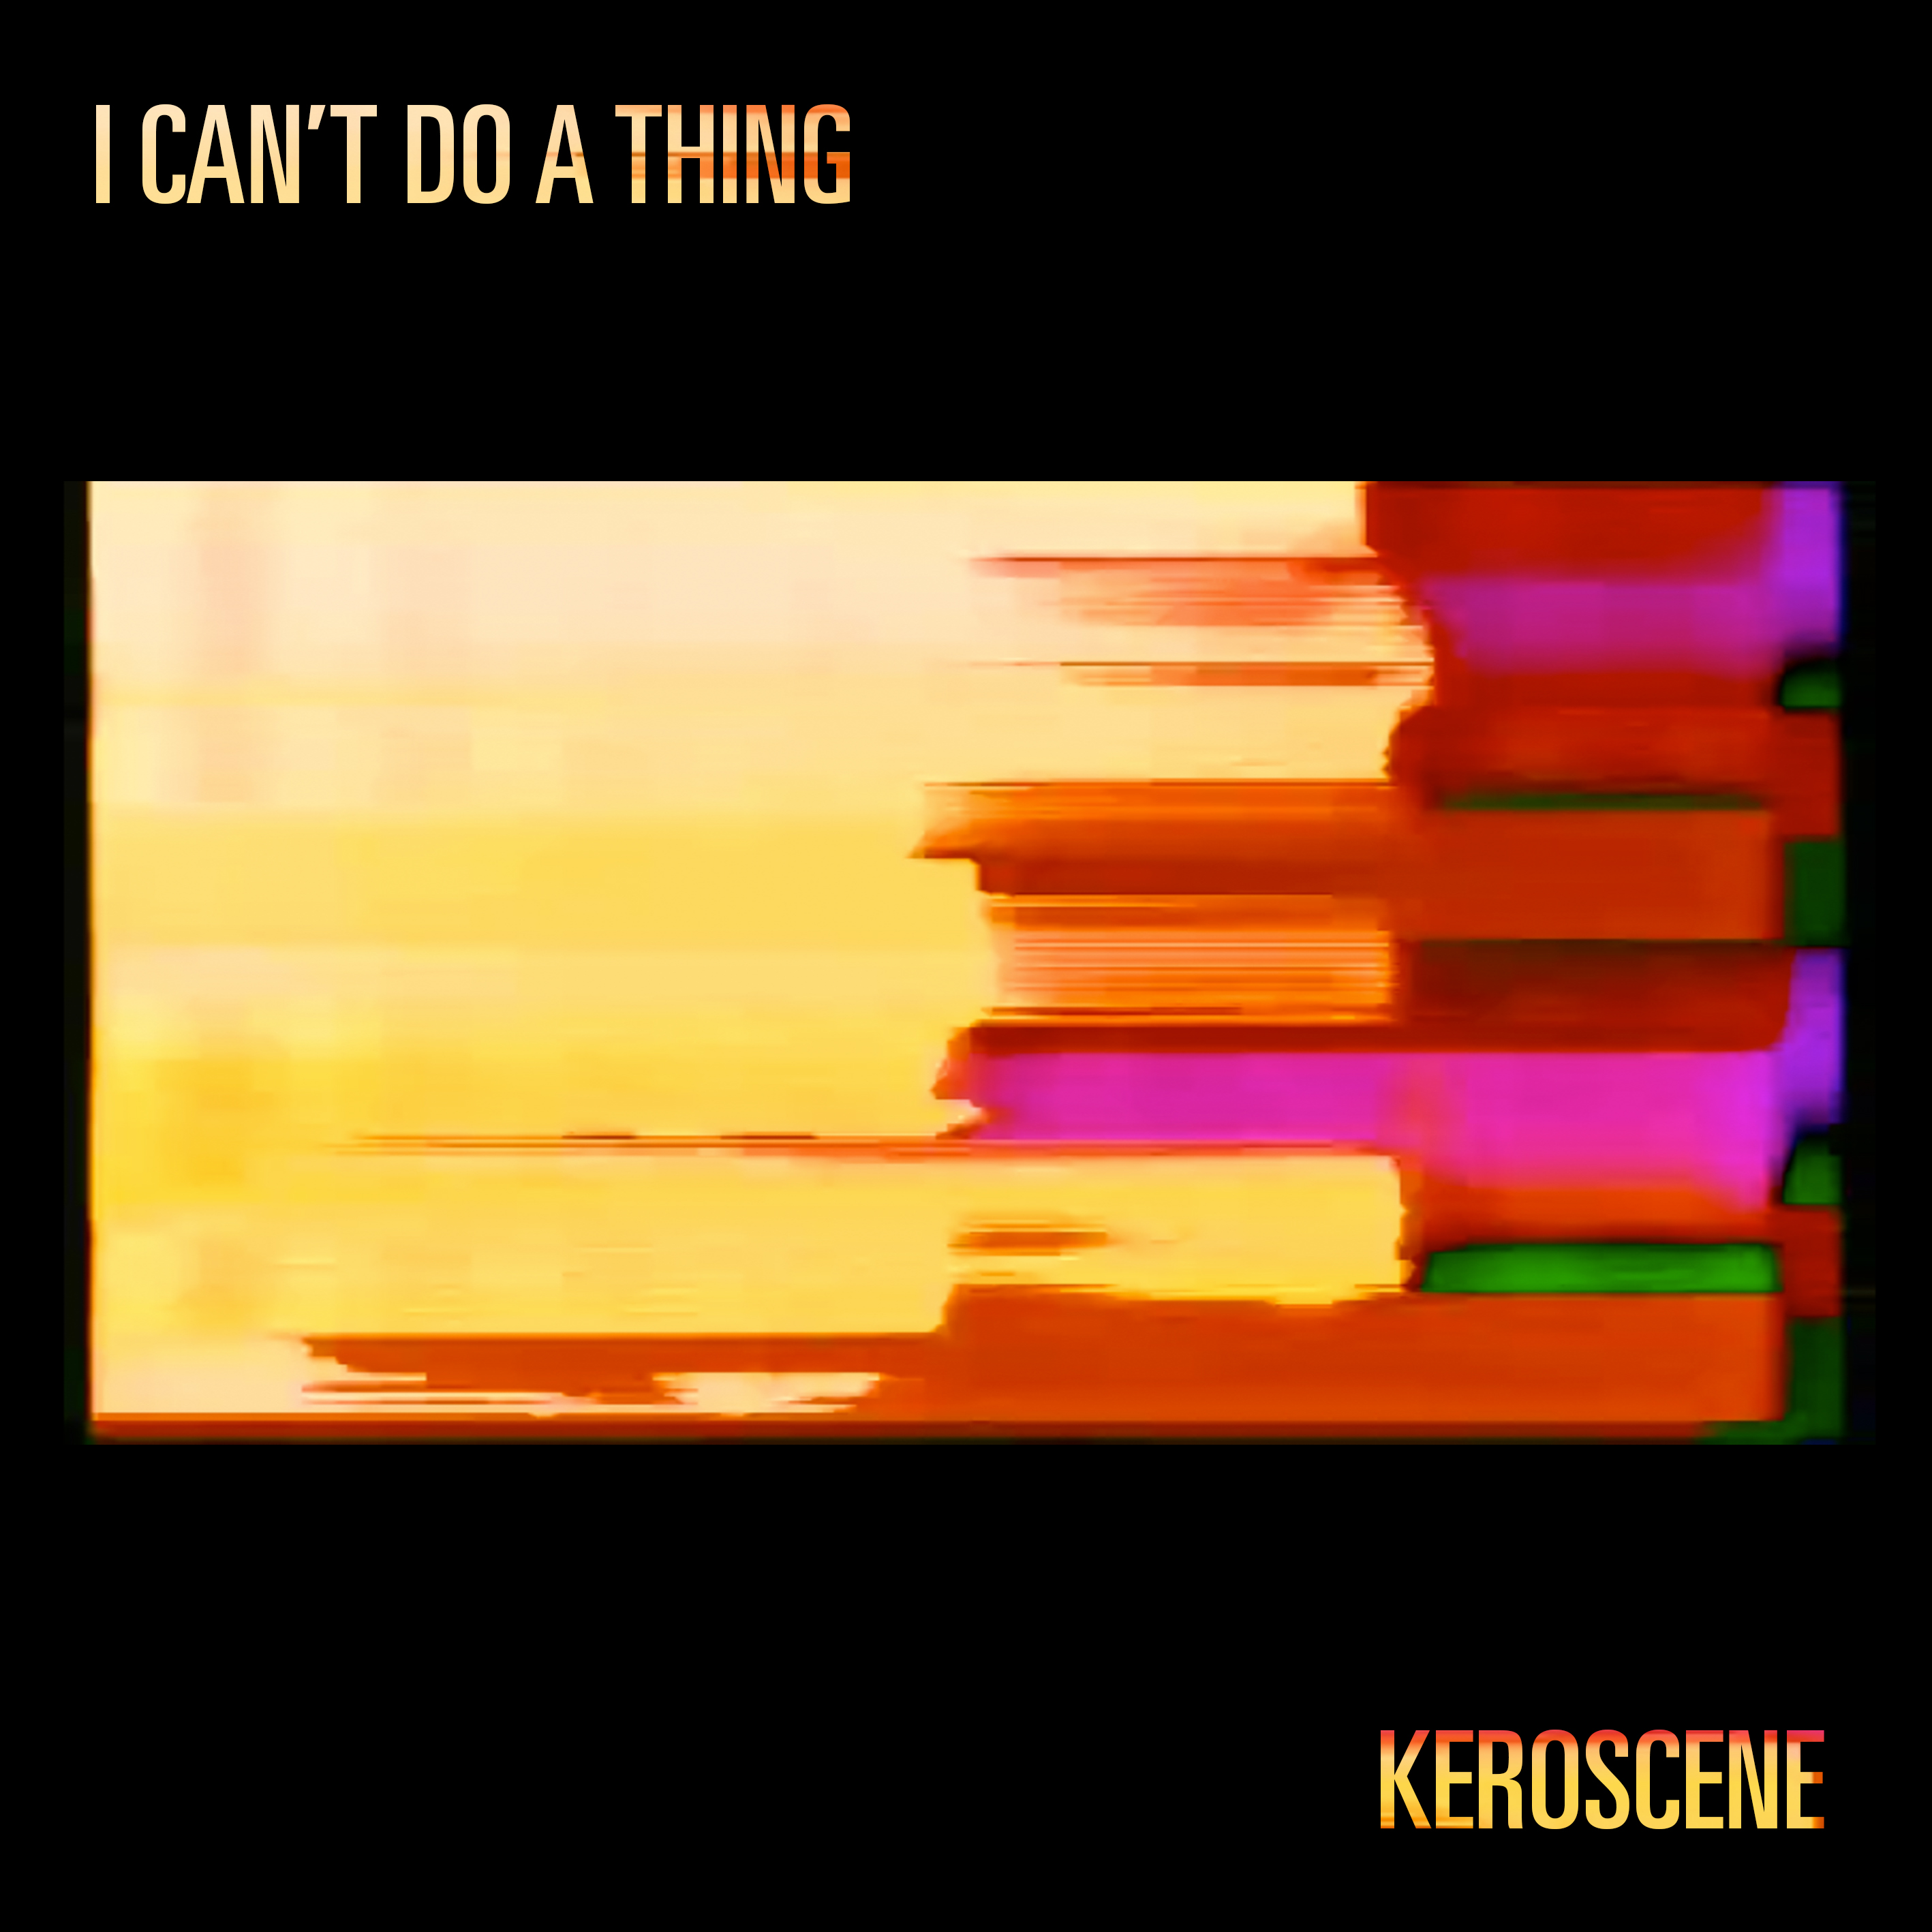 PREMIERE: Keroscene - 'I Can�t Do A Thing' Video